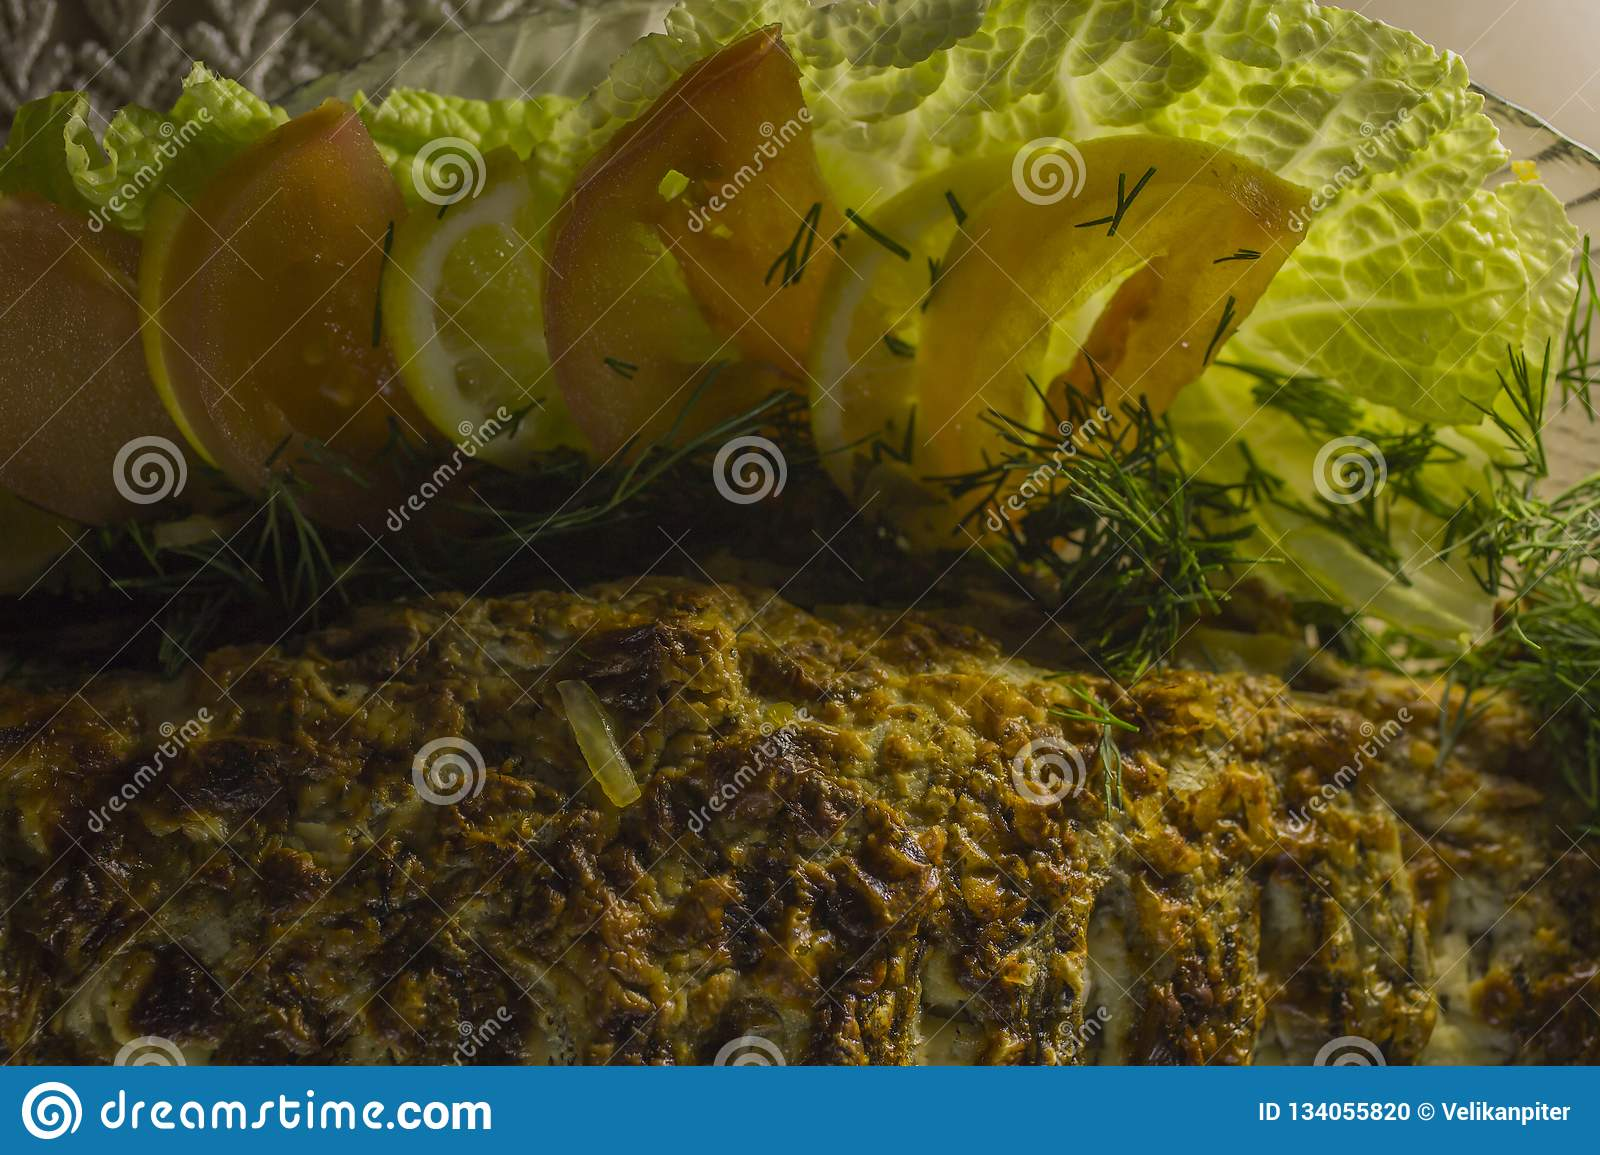 Stuffed carp, decorated with vegetables. Fish dish.